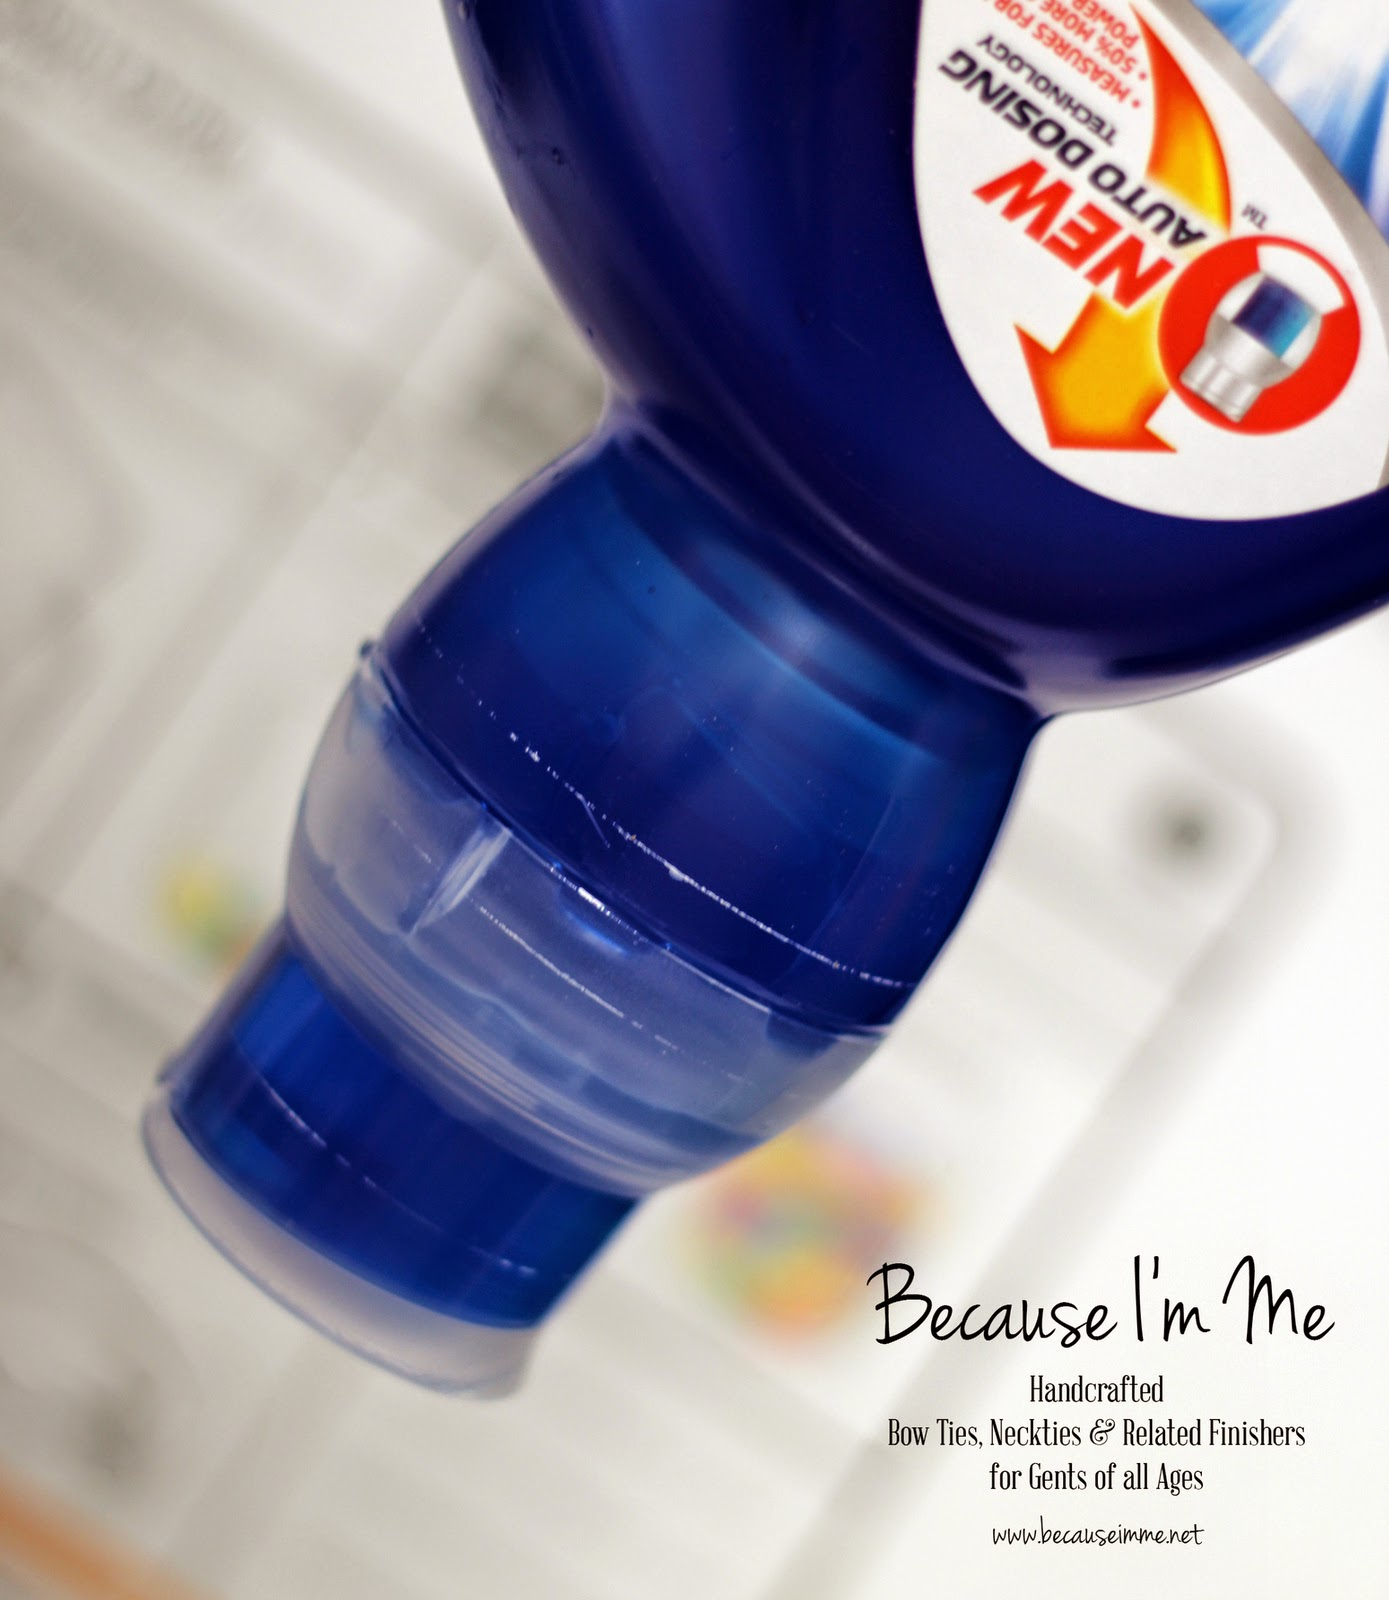 Because I'm Me Free Purex PureShot Liquid Laundry Detergent Review and Giveaway